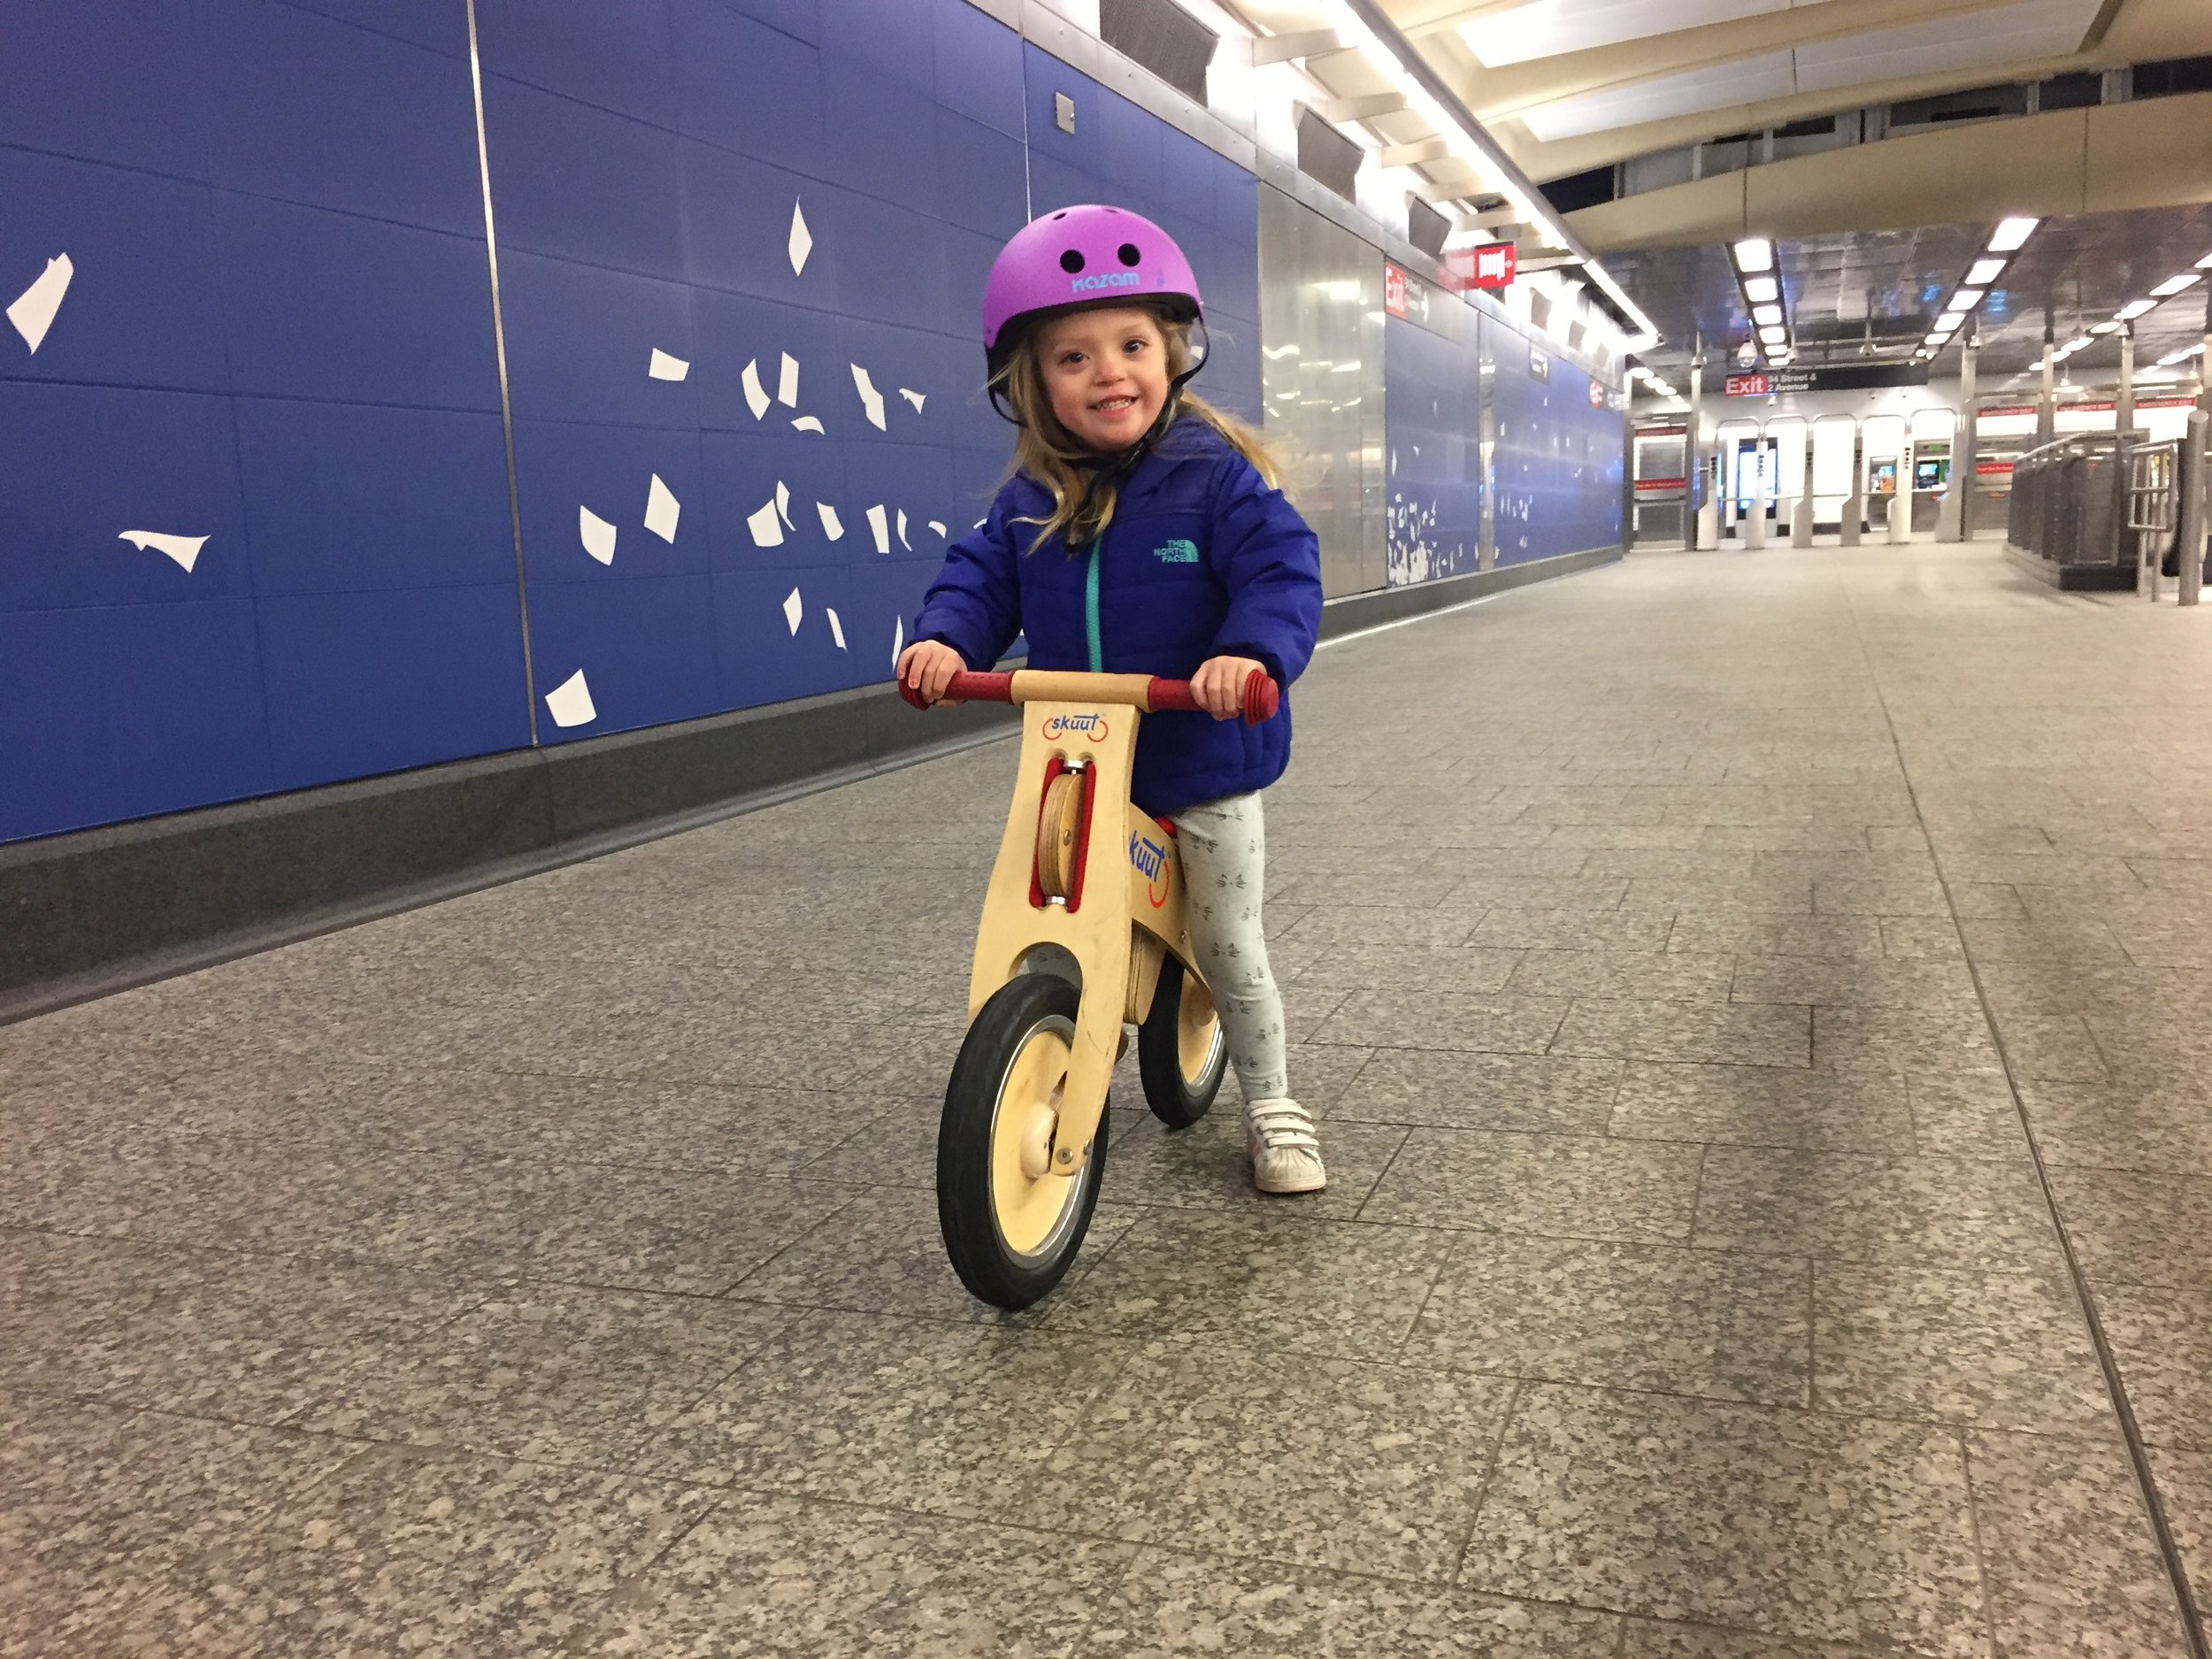 During the winter, we would take advantage of all of this space on the Mezzanine of the Q line by our apartment. Lucie would ride her scooter a ton and started to learn to ride a balance bike.